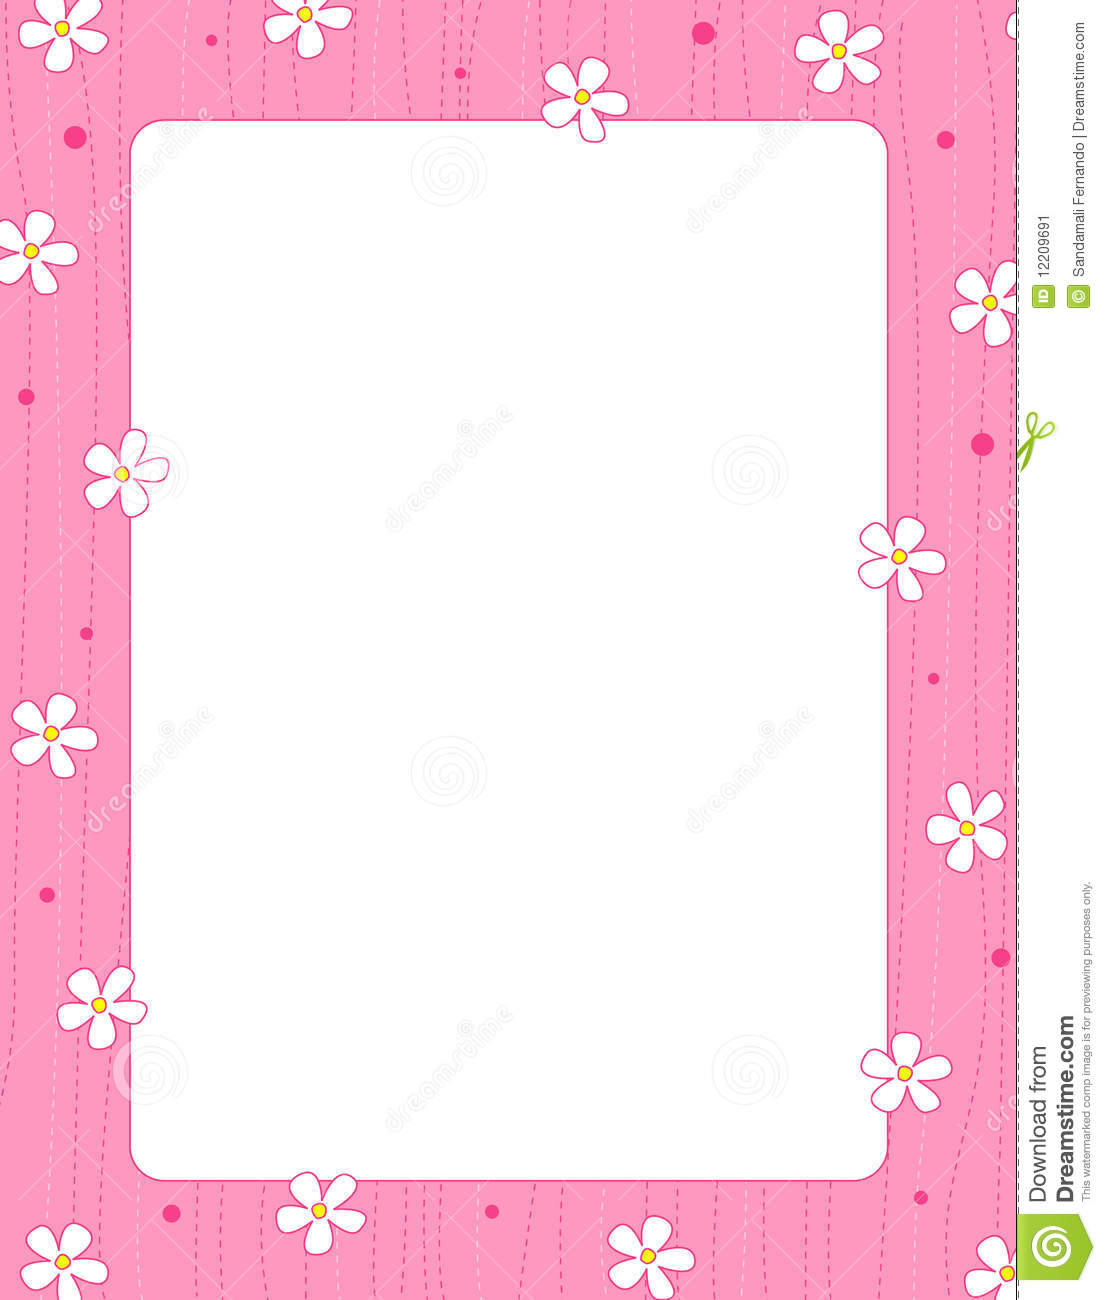 Cute Bordered Pastel Flower Wallpaper Floral Border Frame Stock Vector Illustration Of Blooms